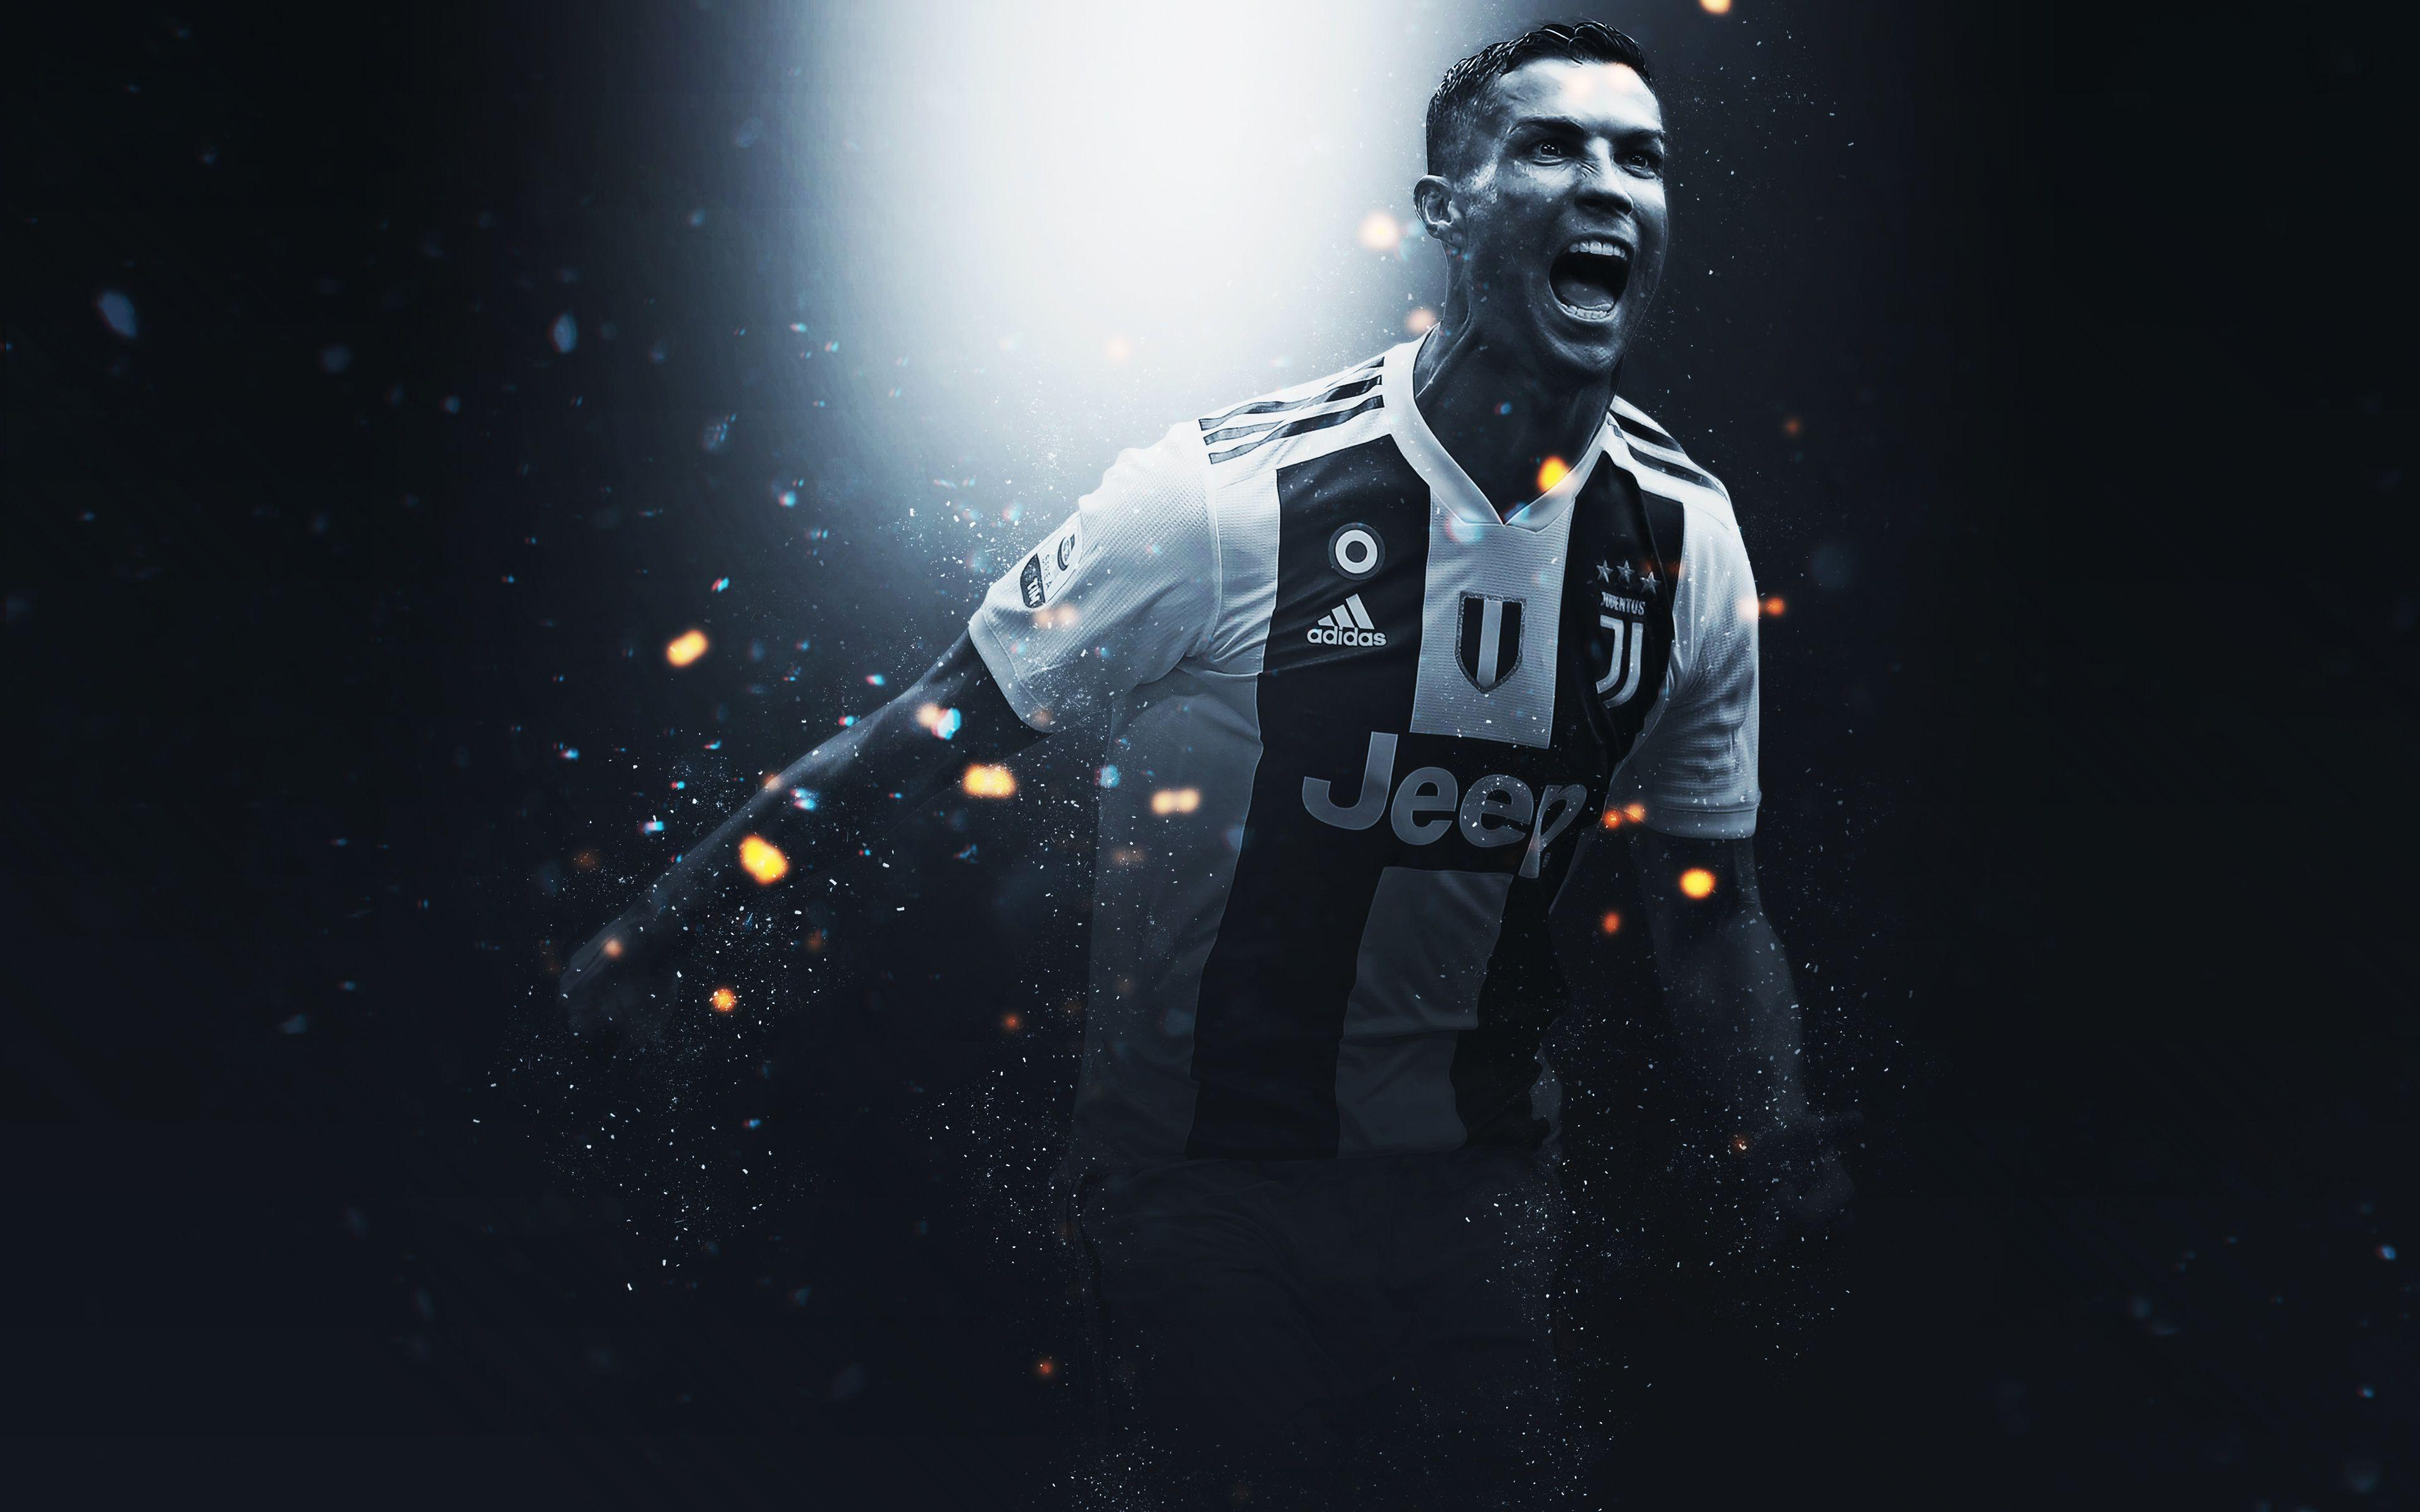 Cristiano Ronaldo Juventus FC, HD Sports, 4k Wallpapers, Image